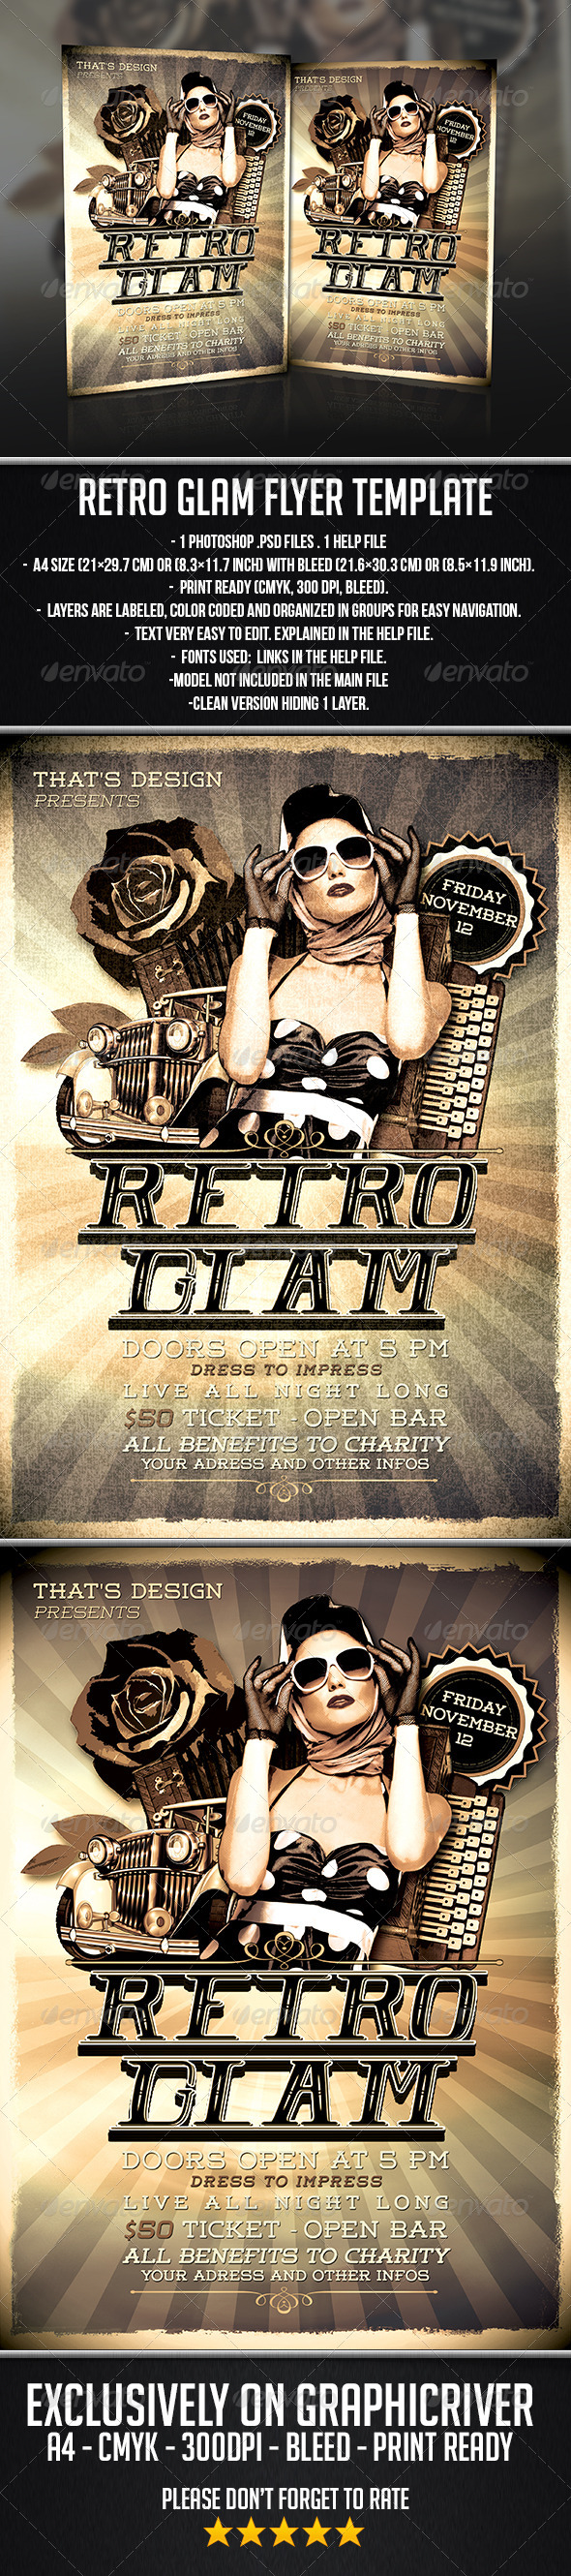 GraphicRiver Retro Glam Flyer Template 7577112